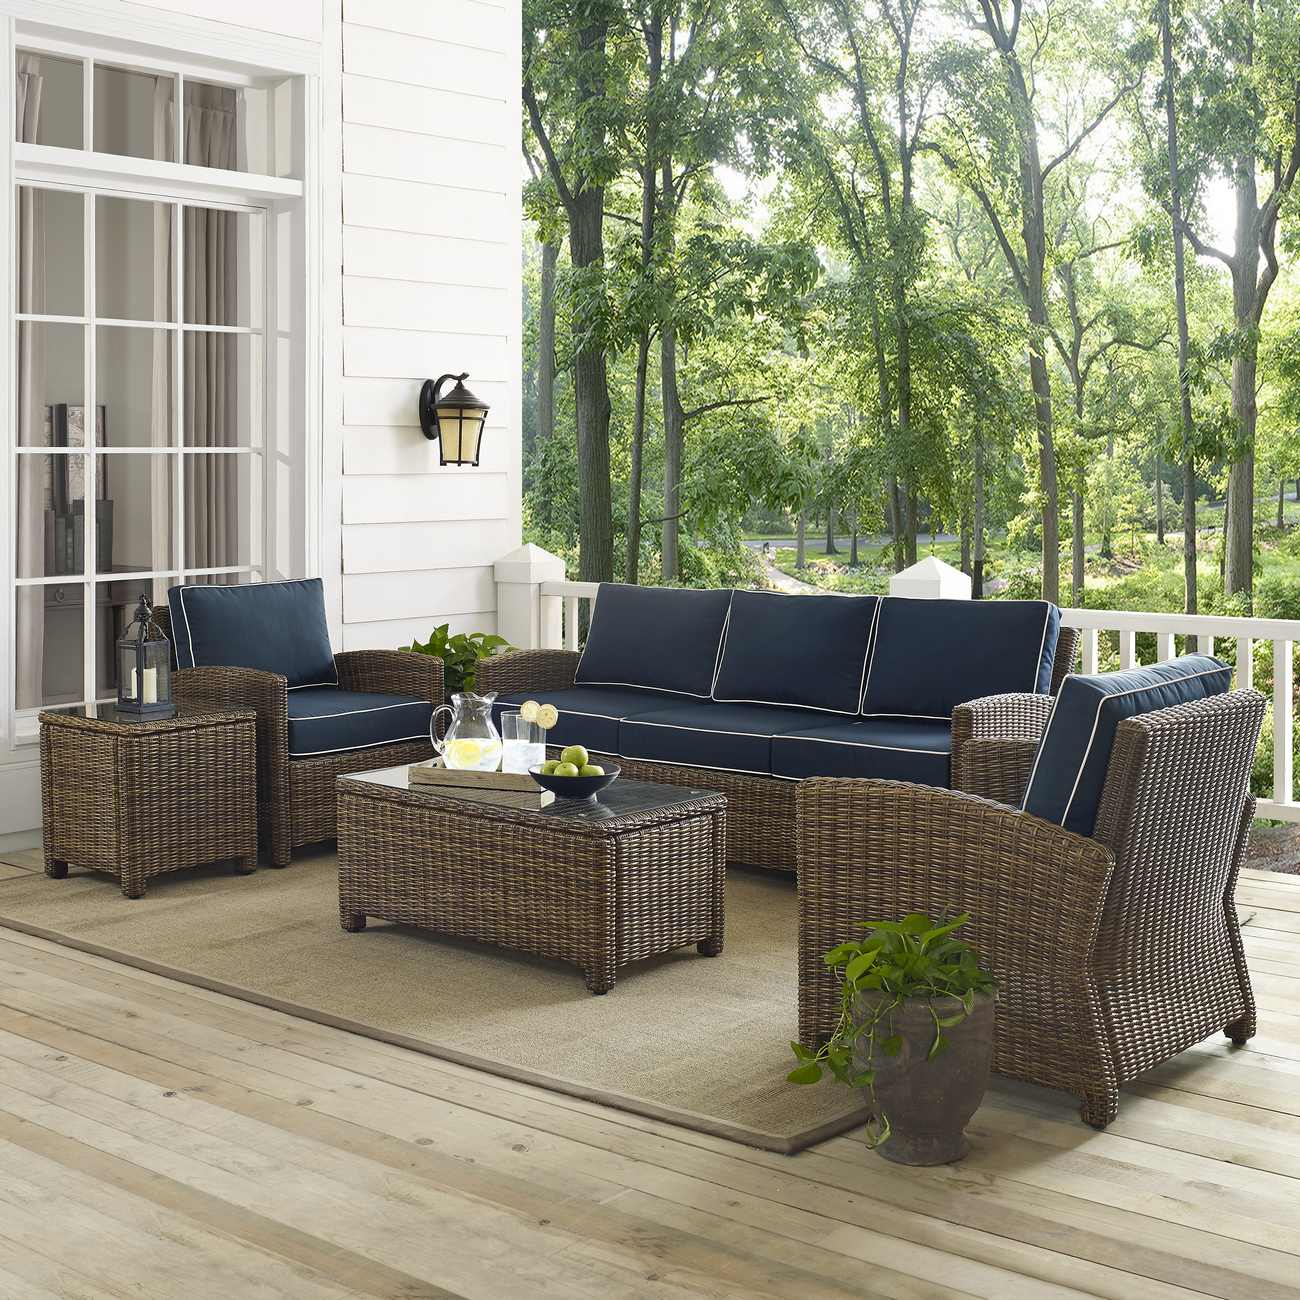 Crosley Brands Wicker Sofa Conversation Set Cushions